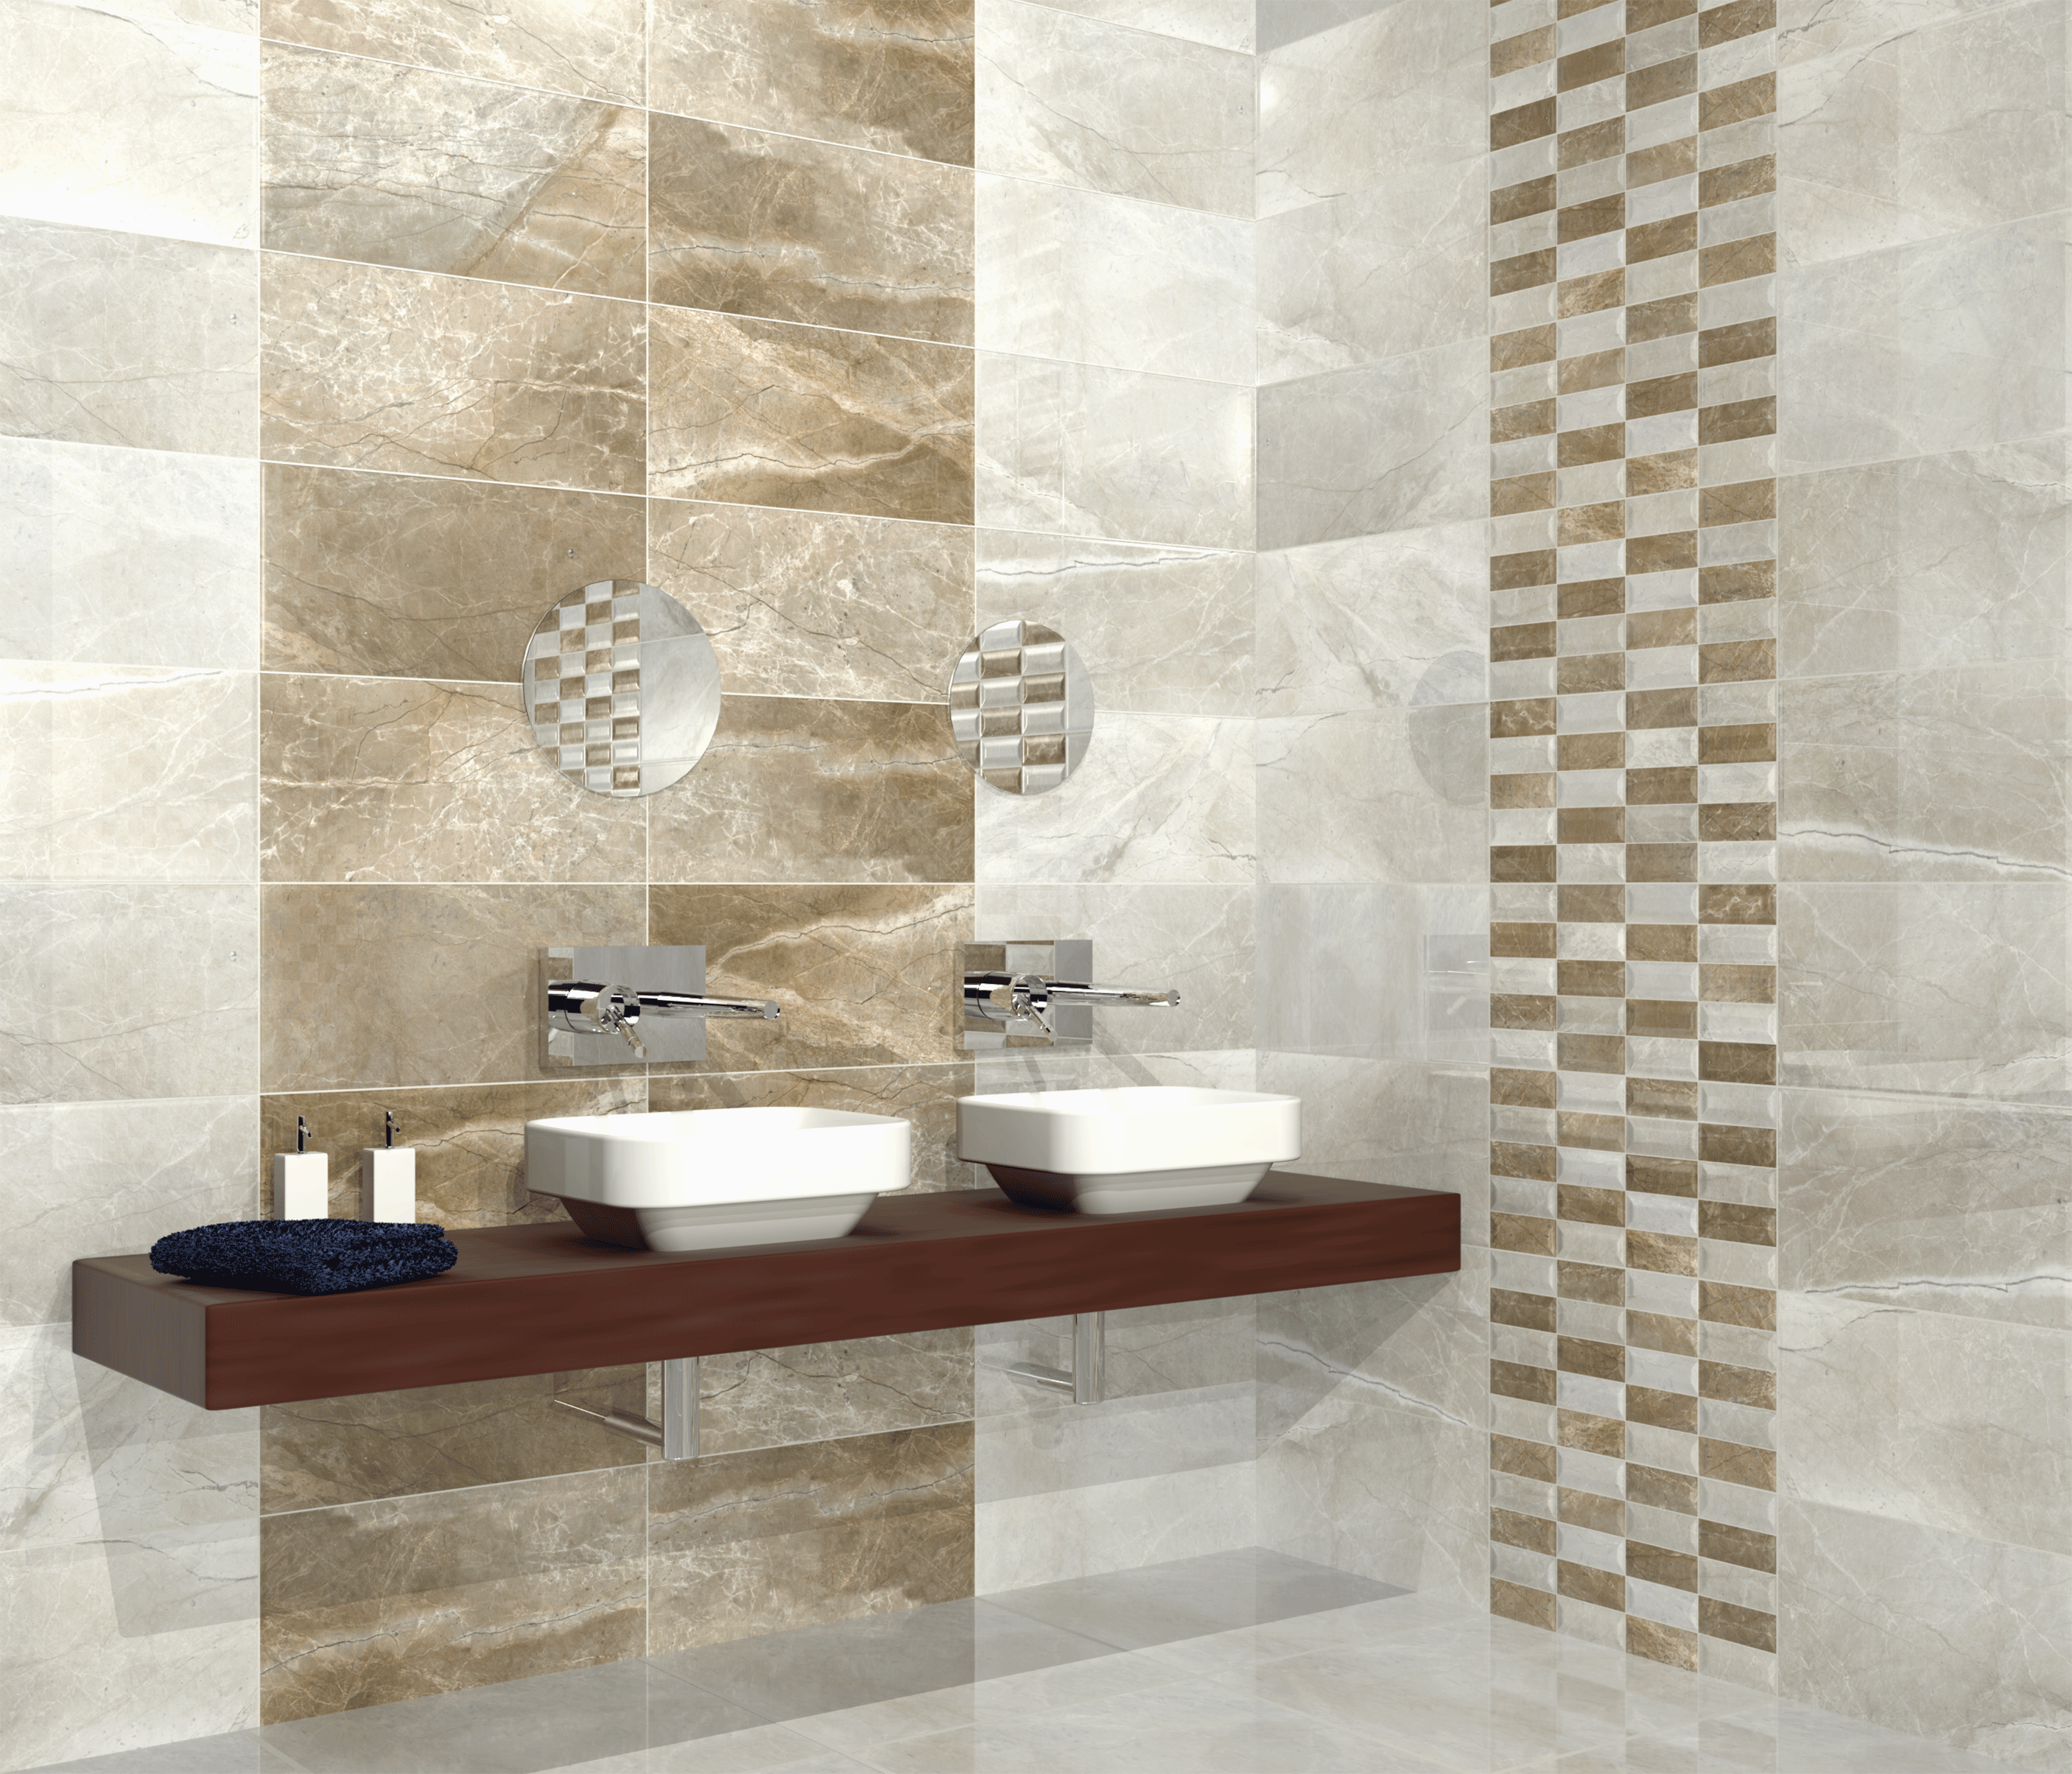 Wall Tile Ideas Latest Posts Under Bathroom Wall Tile  Ideas  Pinterest  Tiles